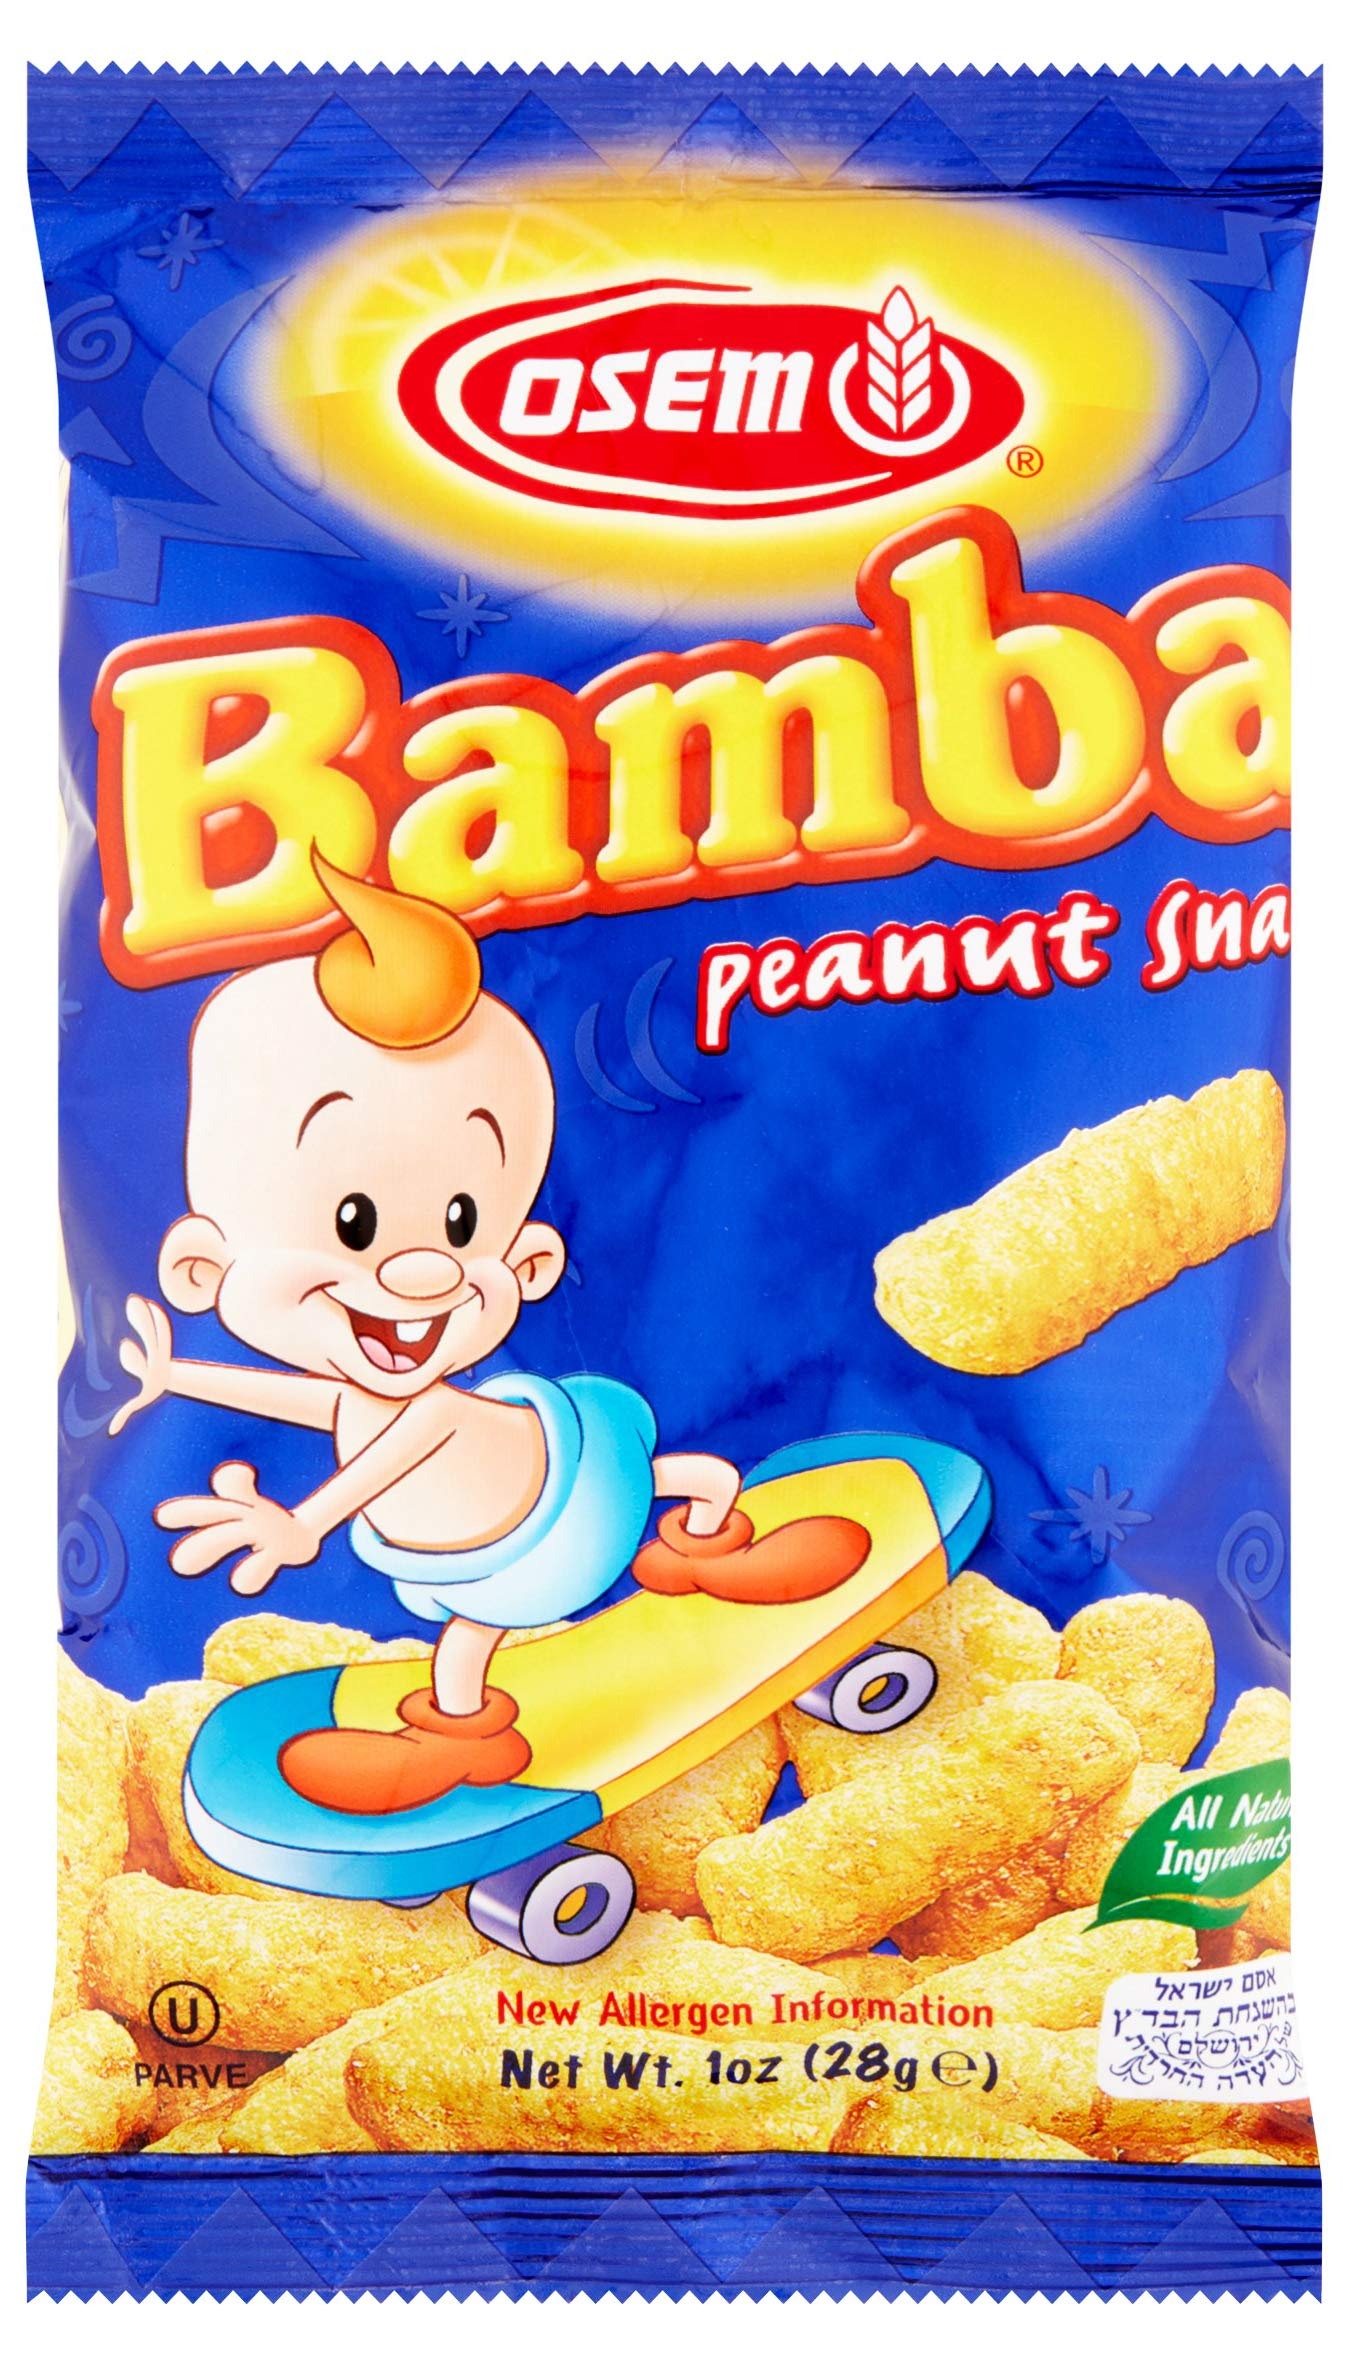 Bamba Peanut Butter Snacks All Natural Peanut Butter Corn Puff Snack (2 Family Packs) (Pack of 16 x 0.7oz Bags) by Osem (Image #2)